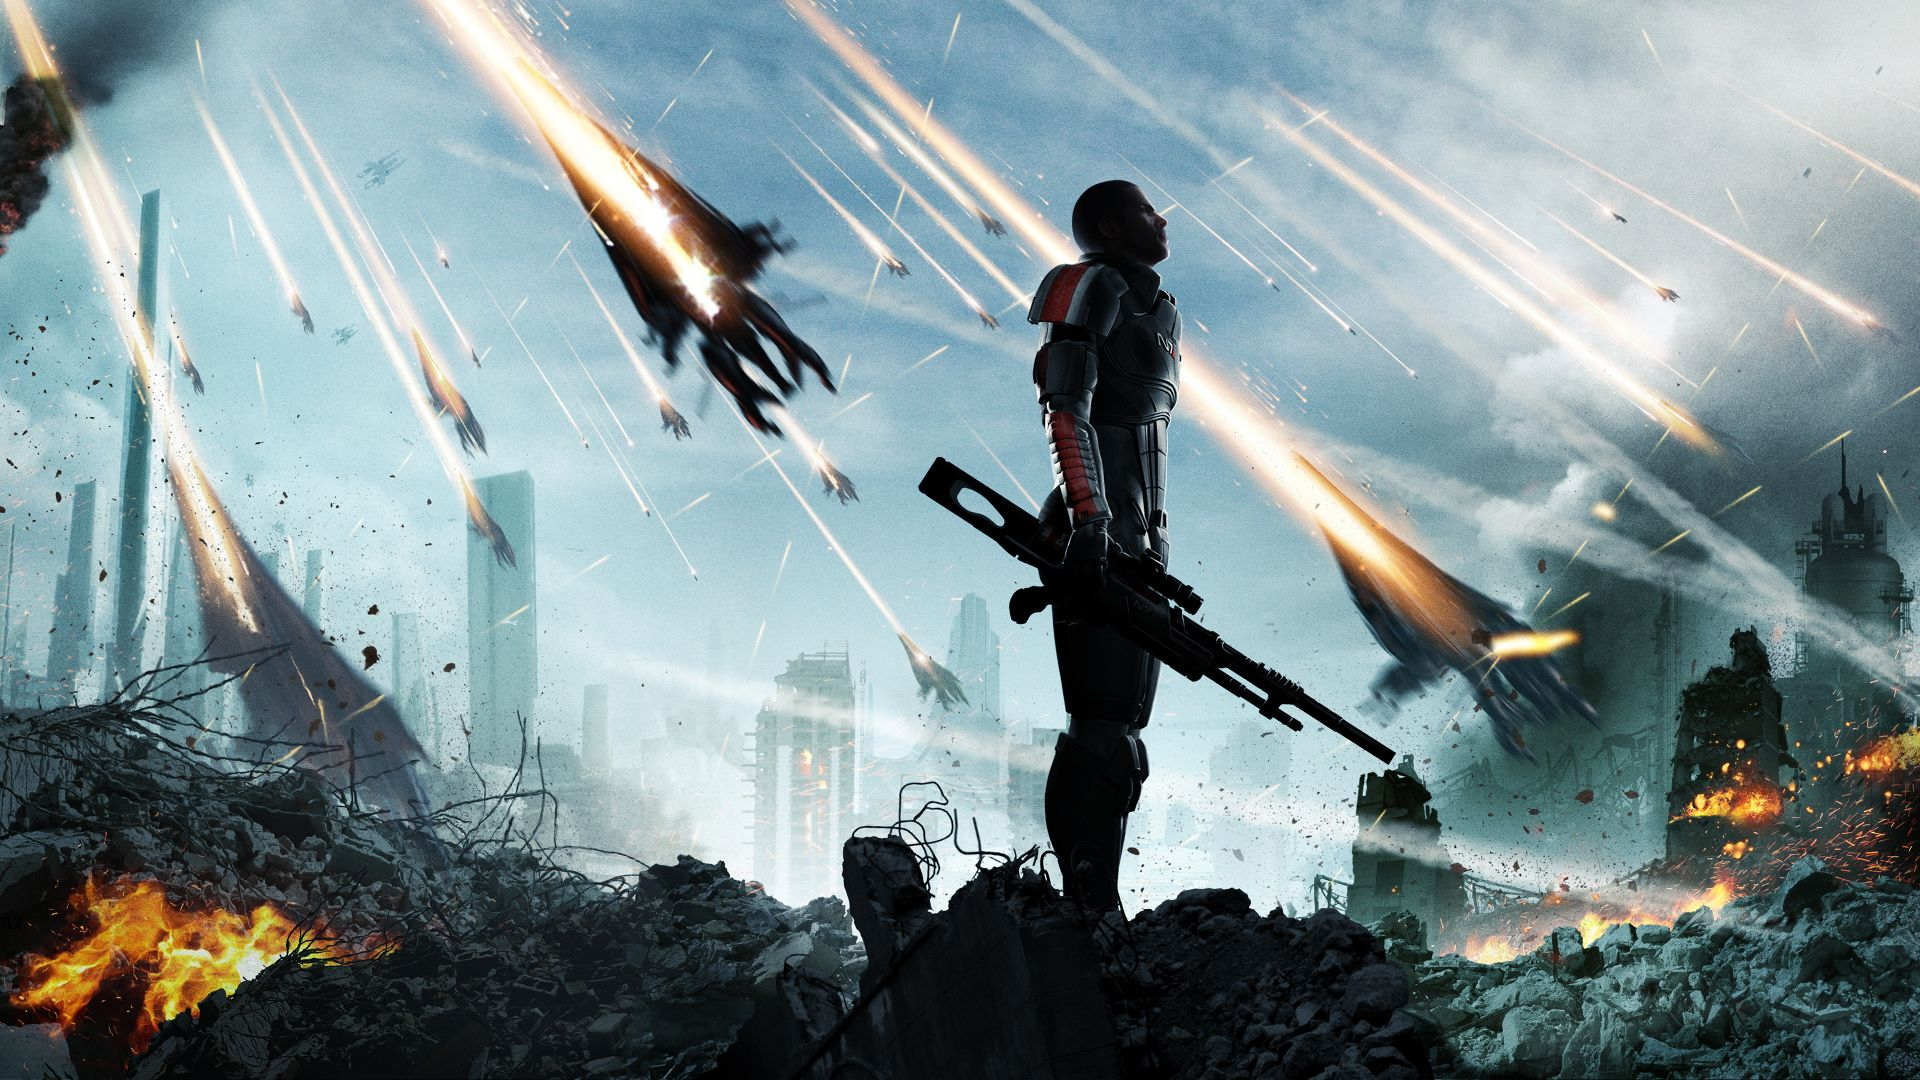 The Team - Mass Effect - The artwork The Team is digitally created concept art for